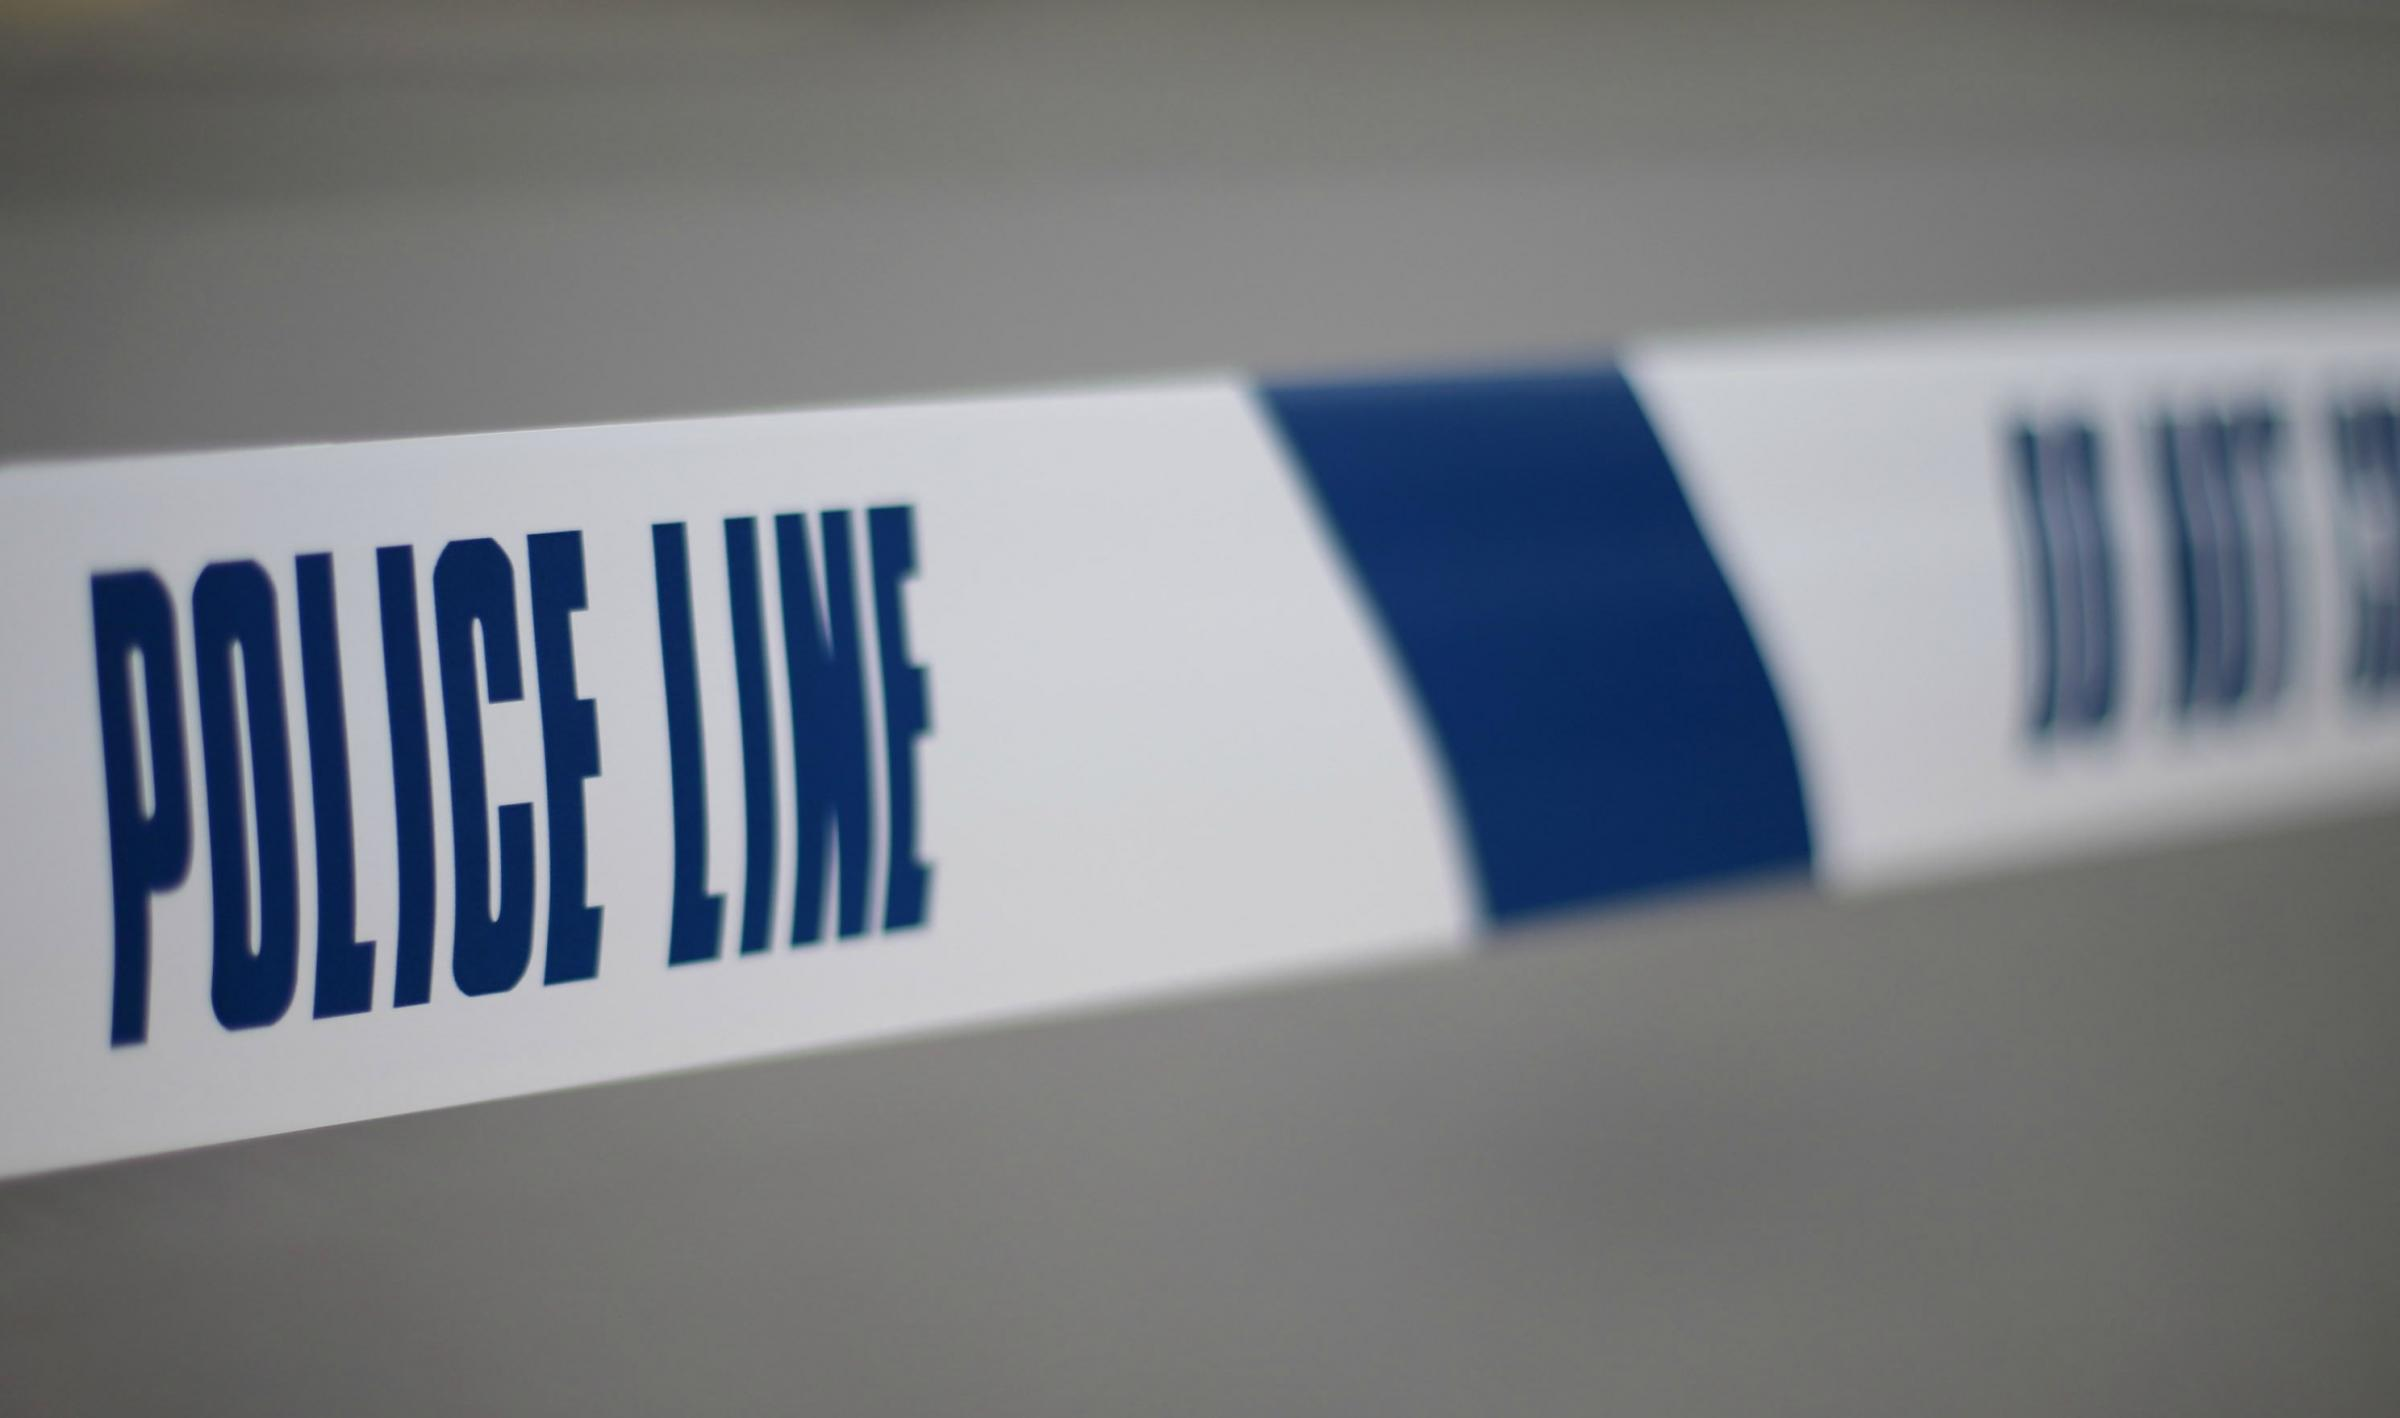 Murder investigation launched after victim of serious assault in Shropshire dies